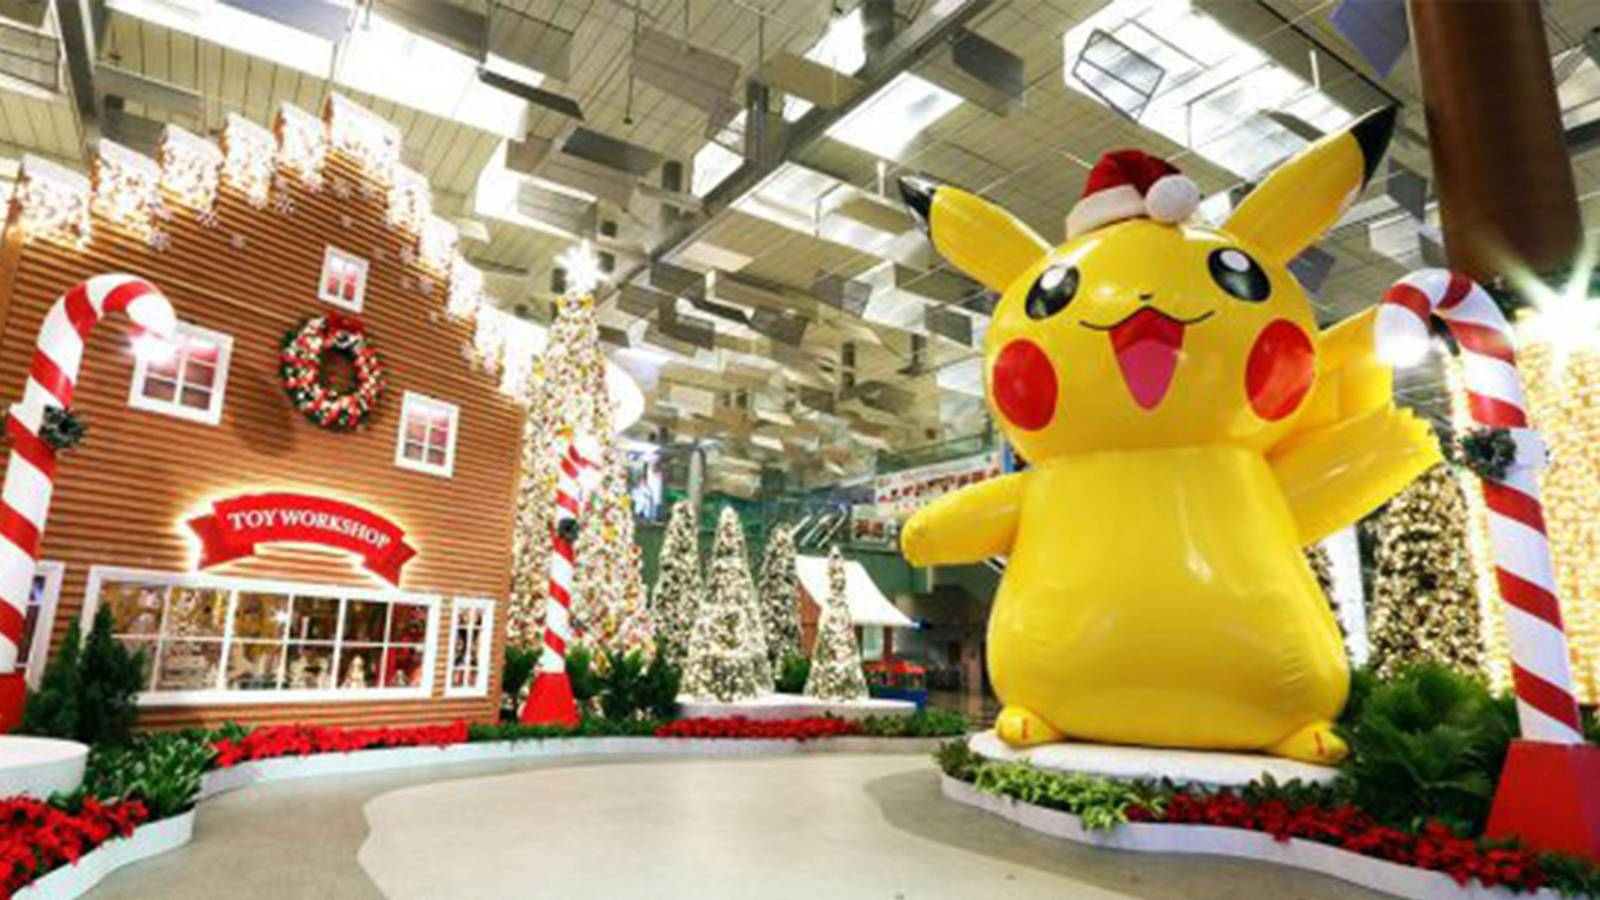 Kids---50-fantastically-fun-things-to-do-this-year-end-pokemon